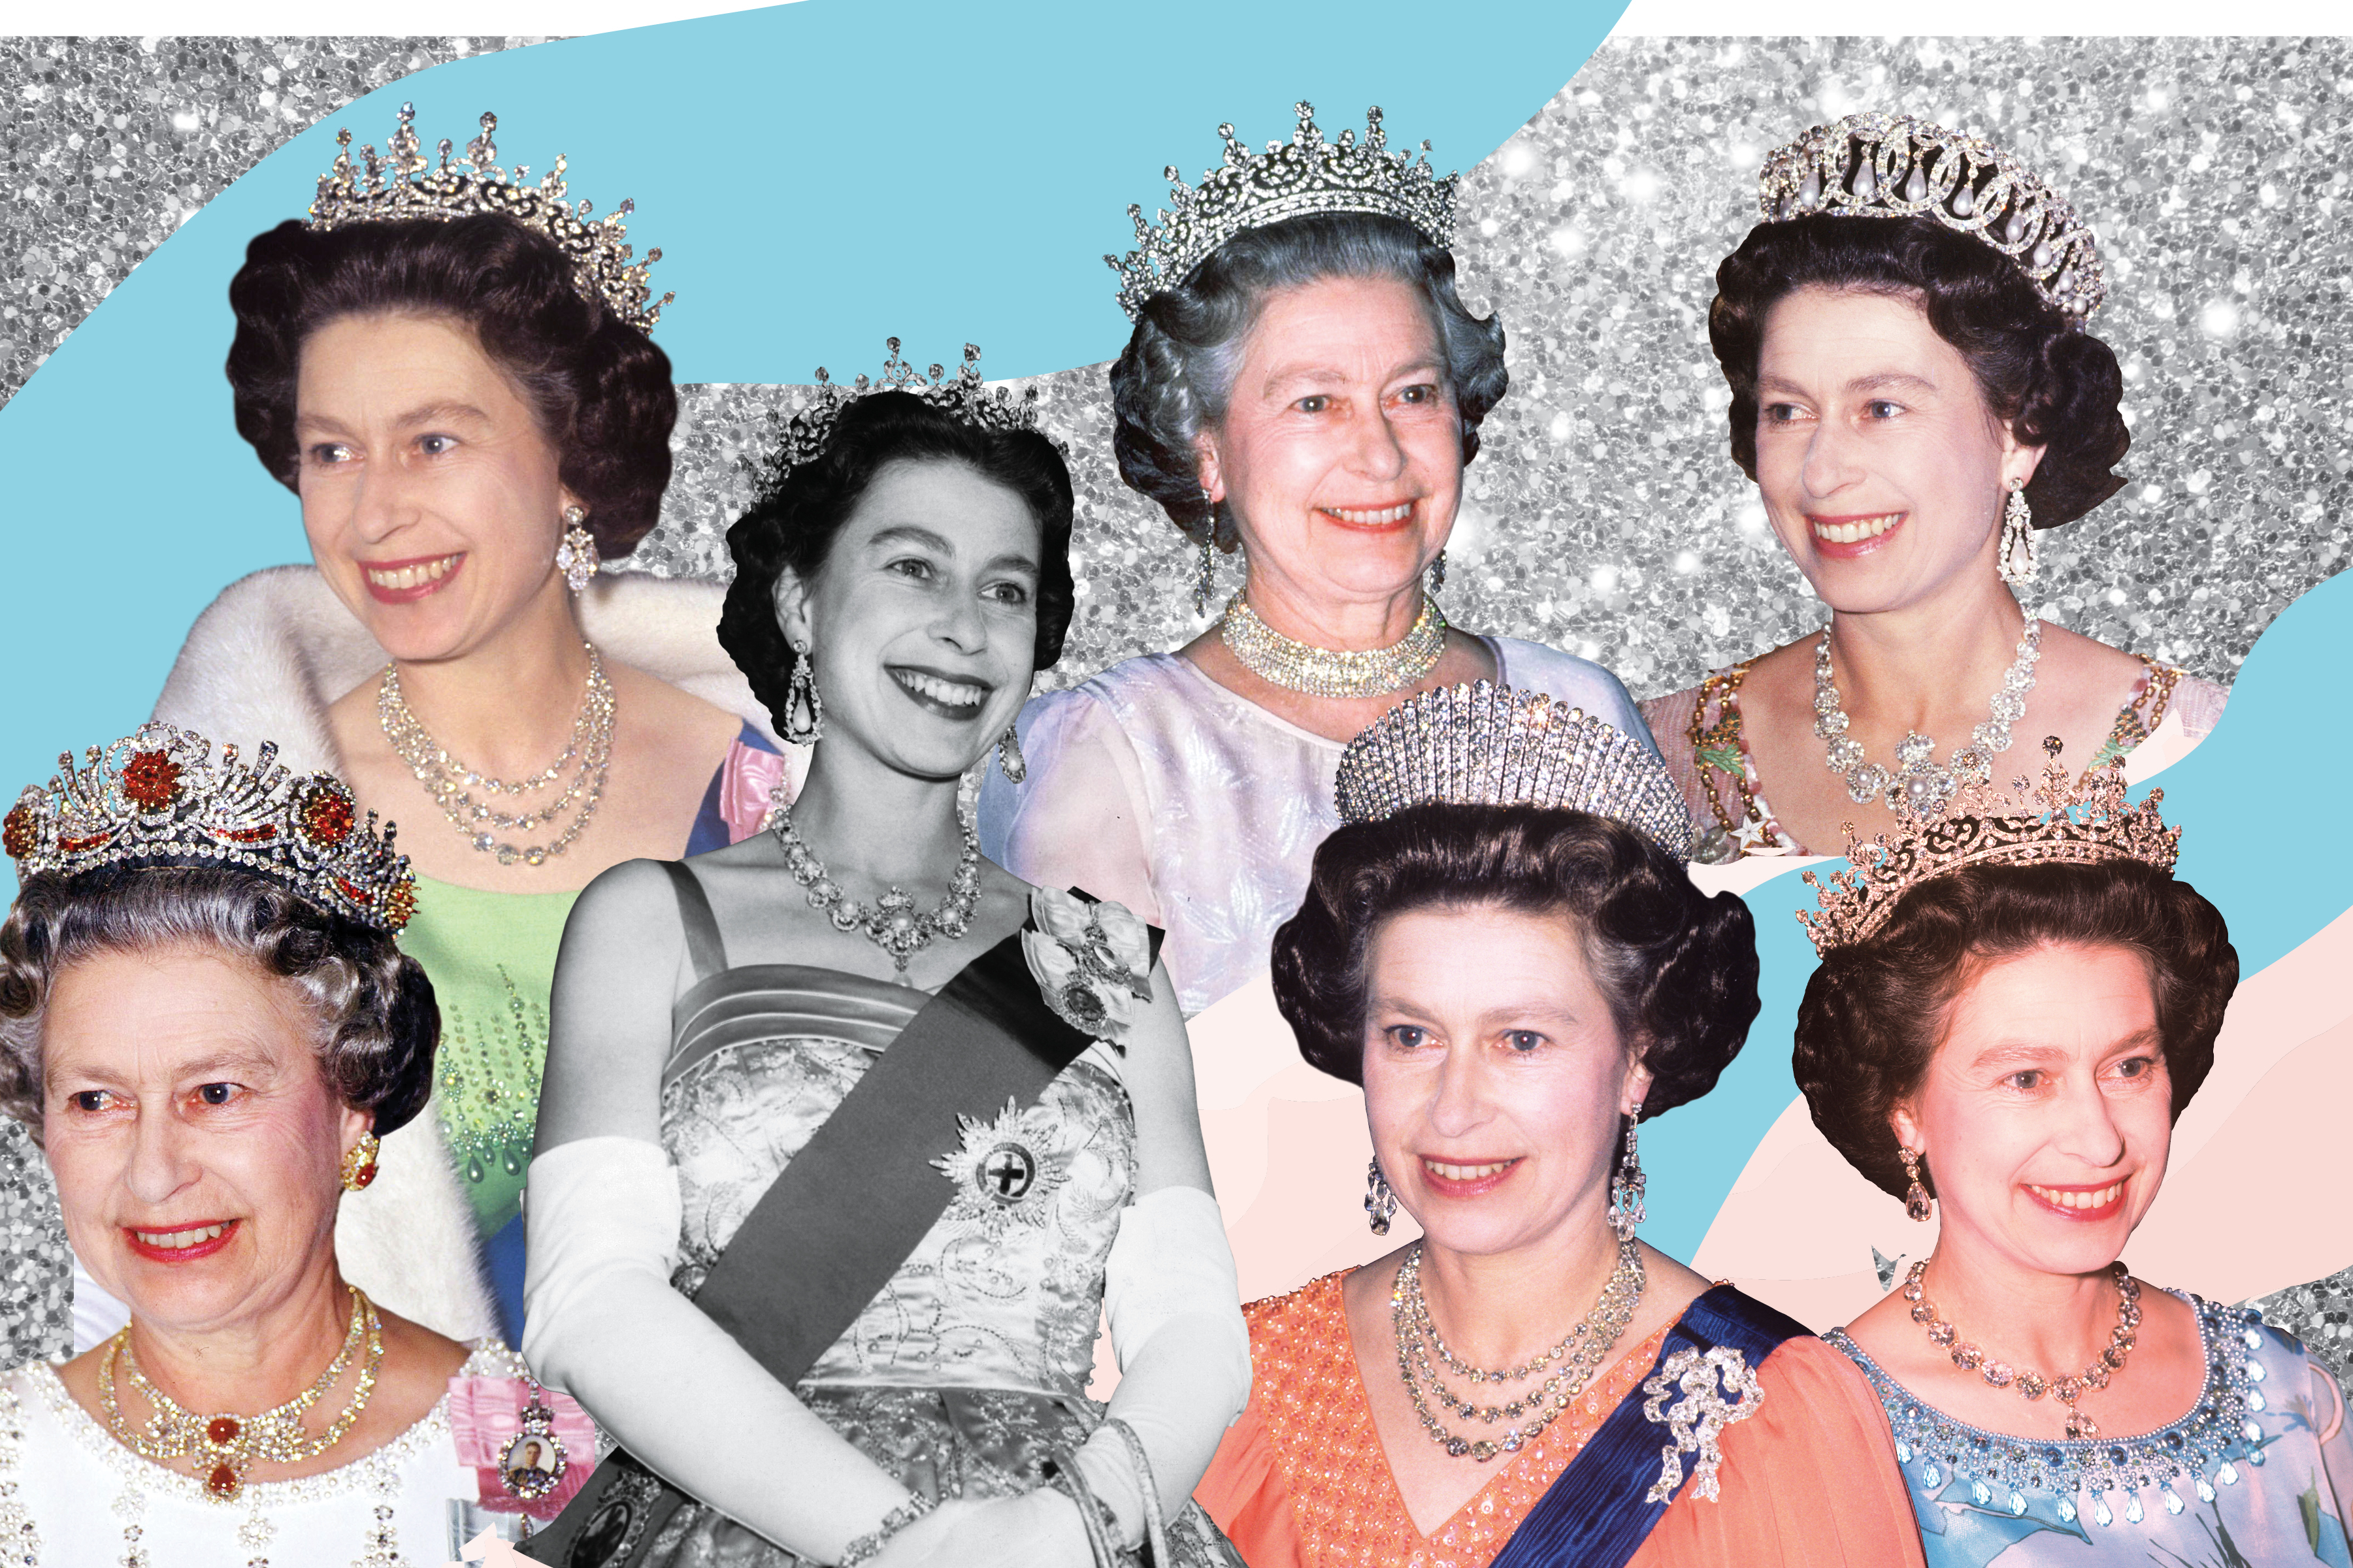 queen elizabeth s tiaras photos of her most lavish tiaras wwd queen elizabeth s tiaras photos of her